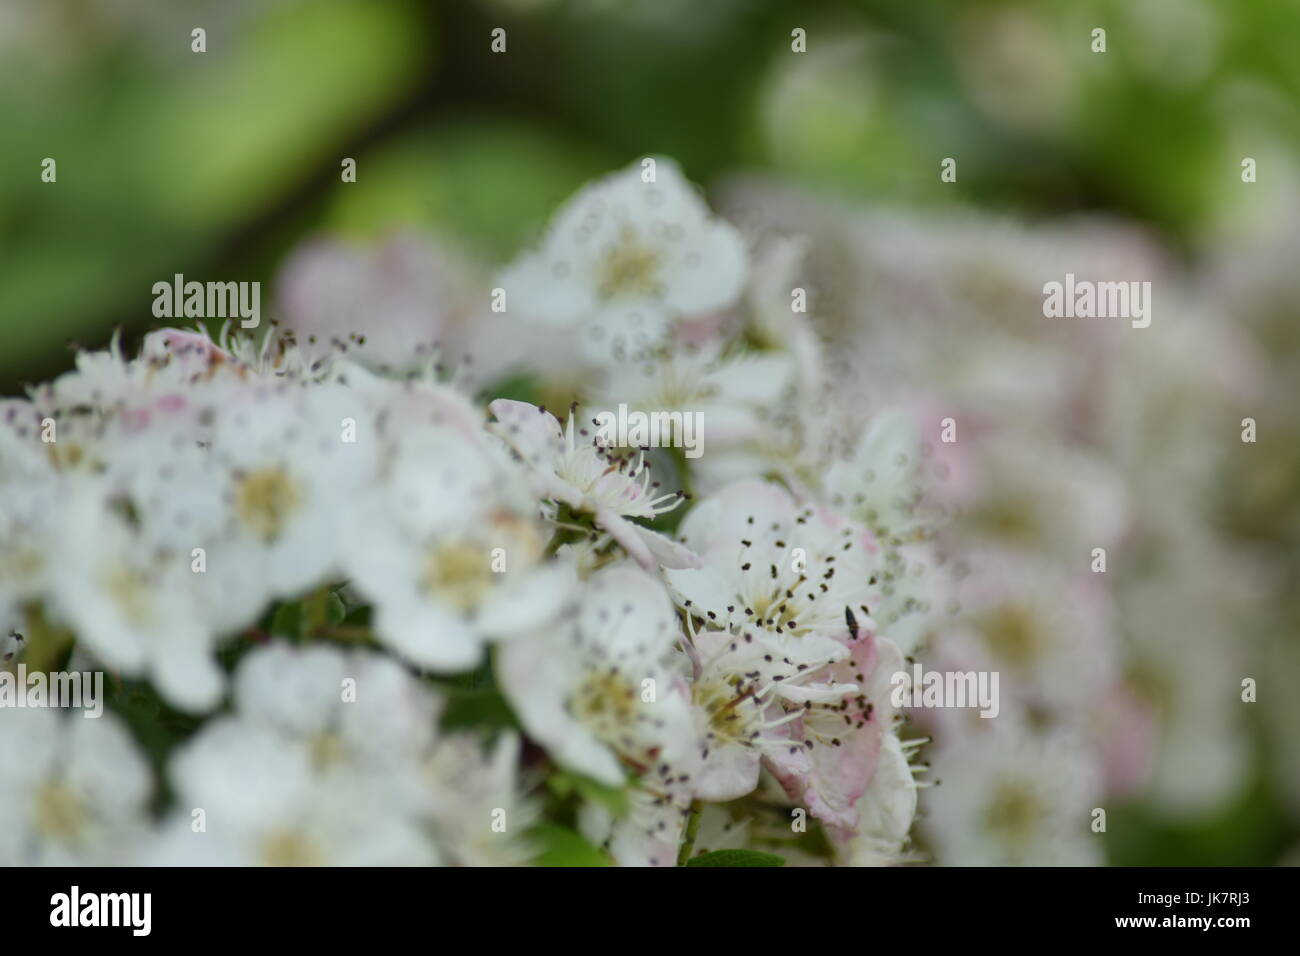 White flowered bush backgrounds stock photo 149533611 alamy white flowered bush backgrounds mightylinksfo